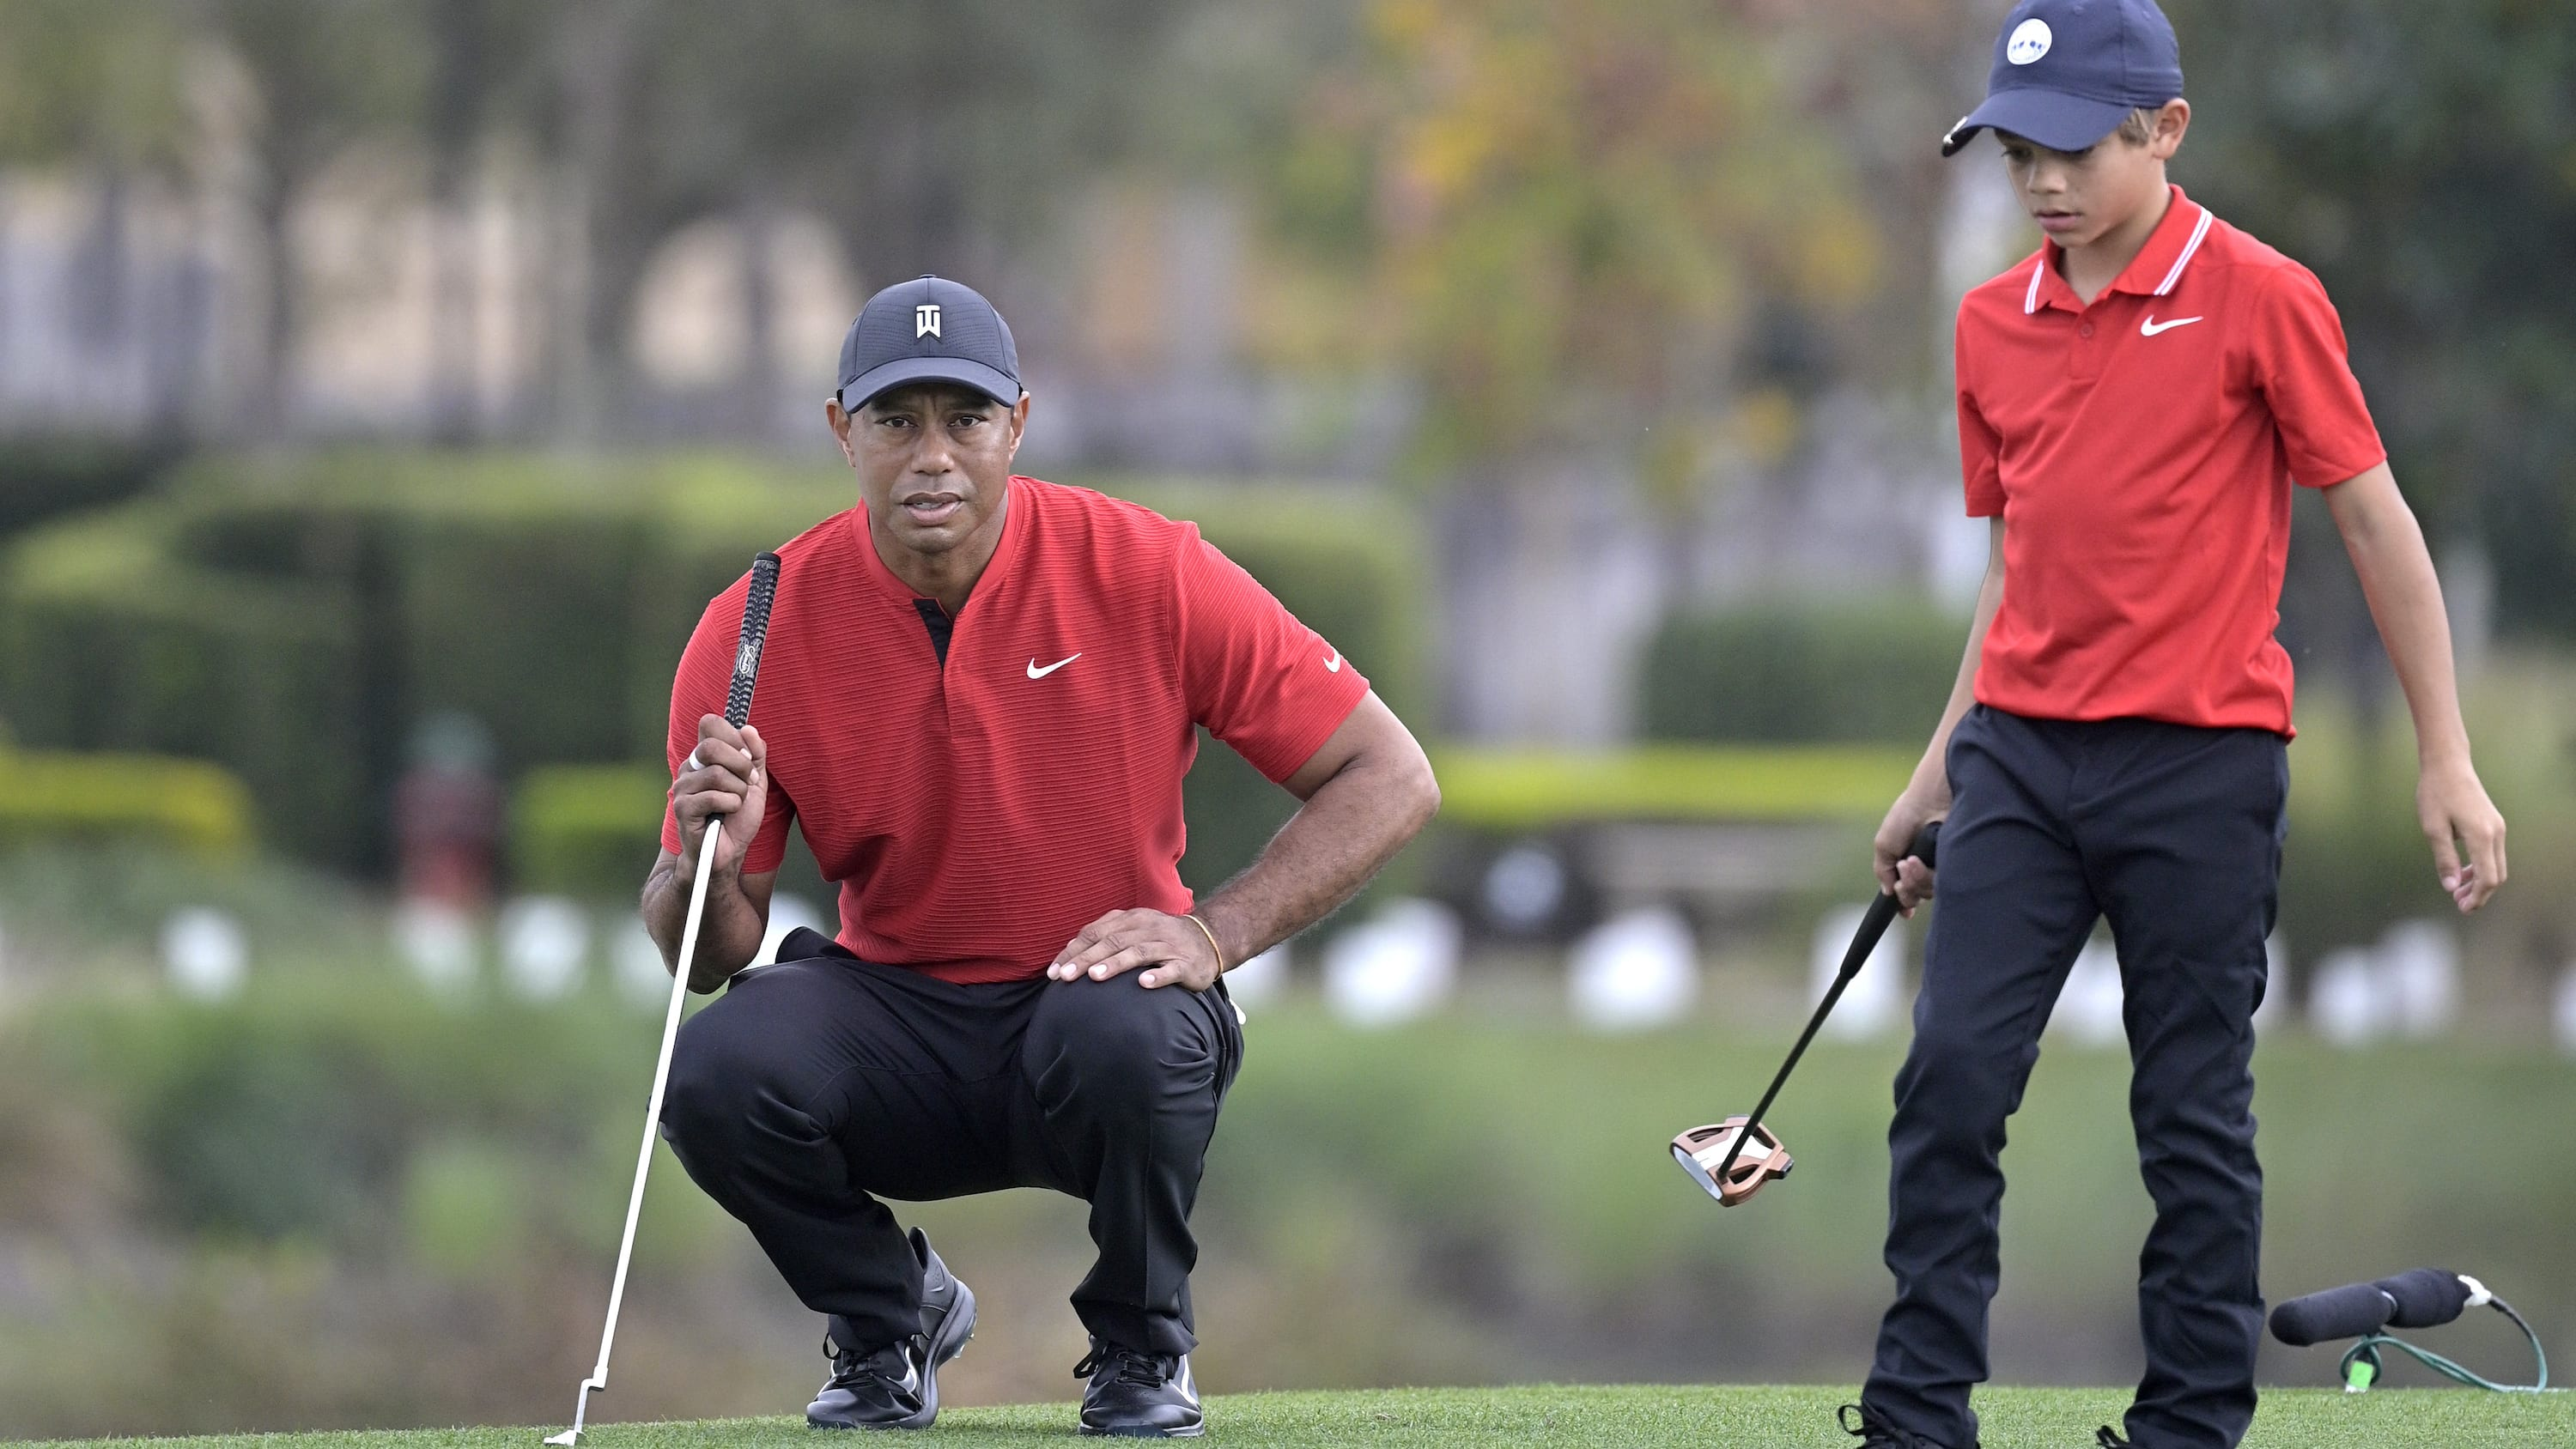 Tiger Woods announces another back surgery, to miss Farmers and Genesis